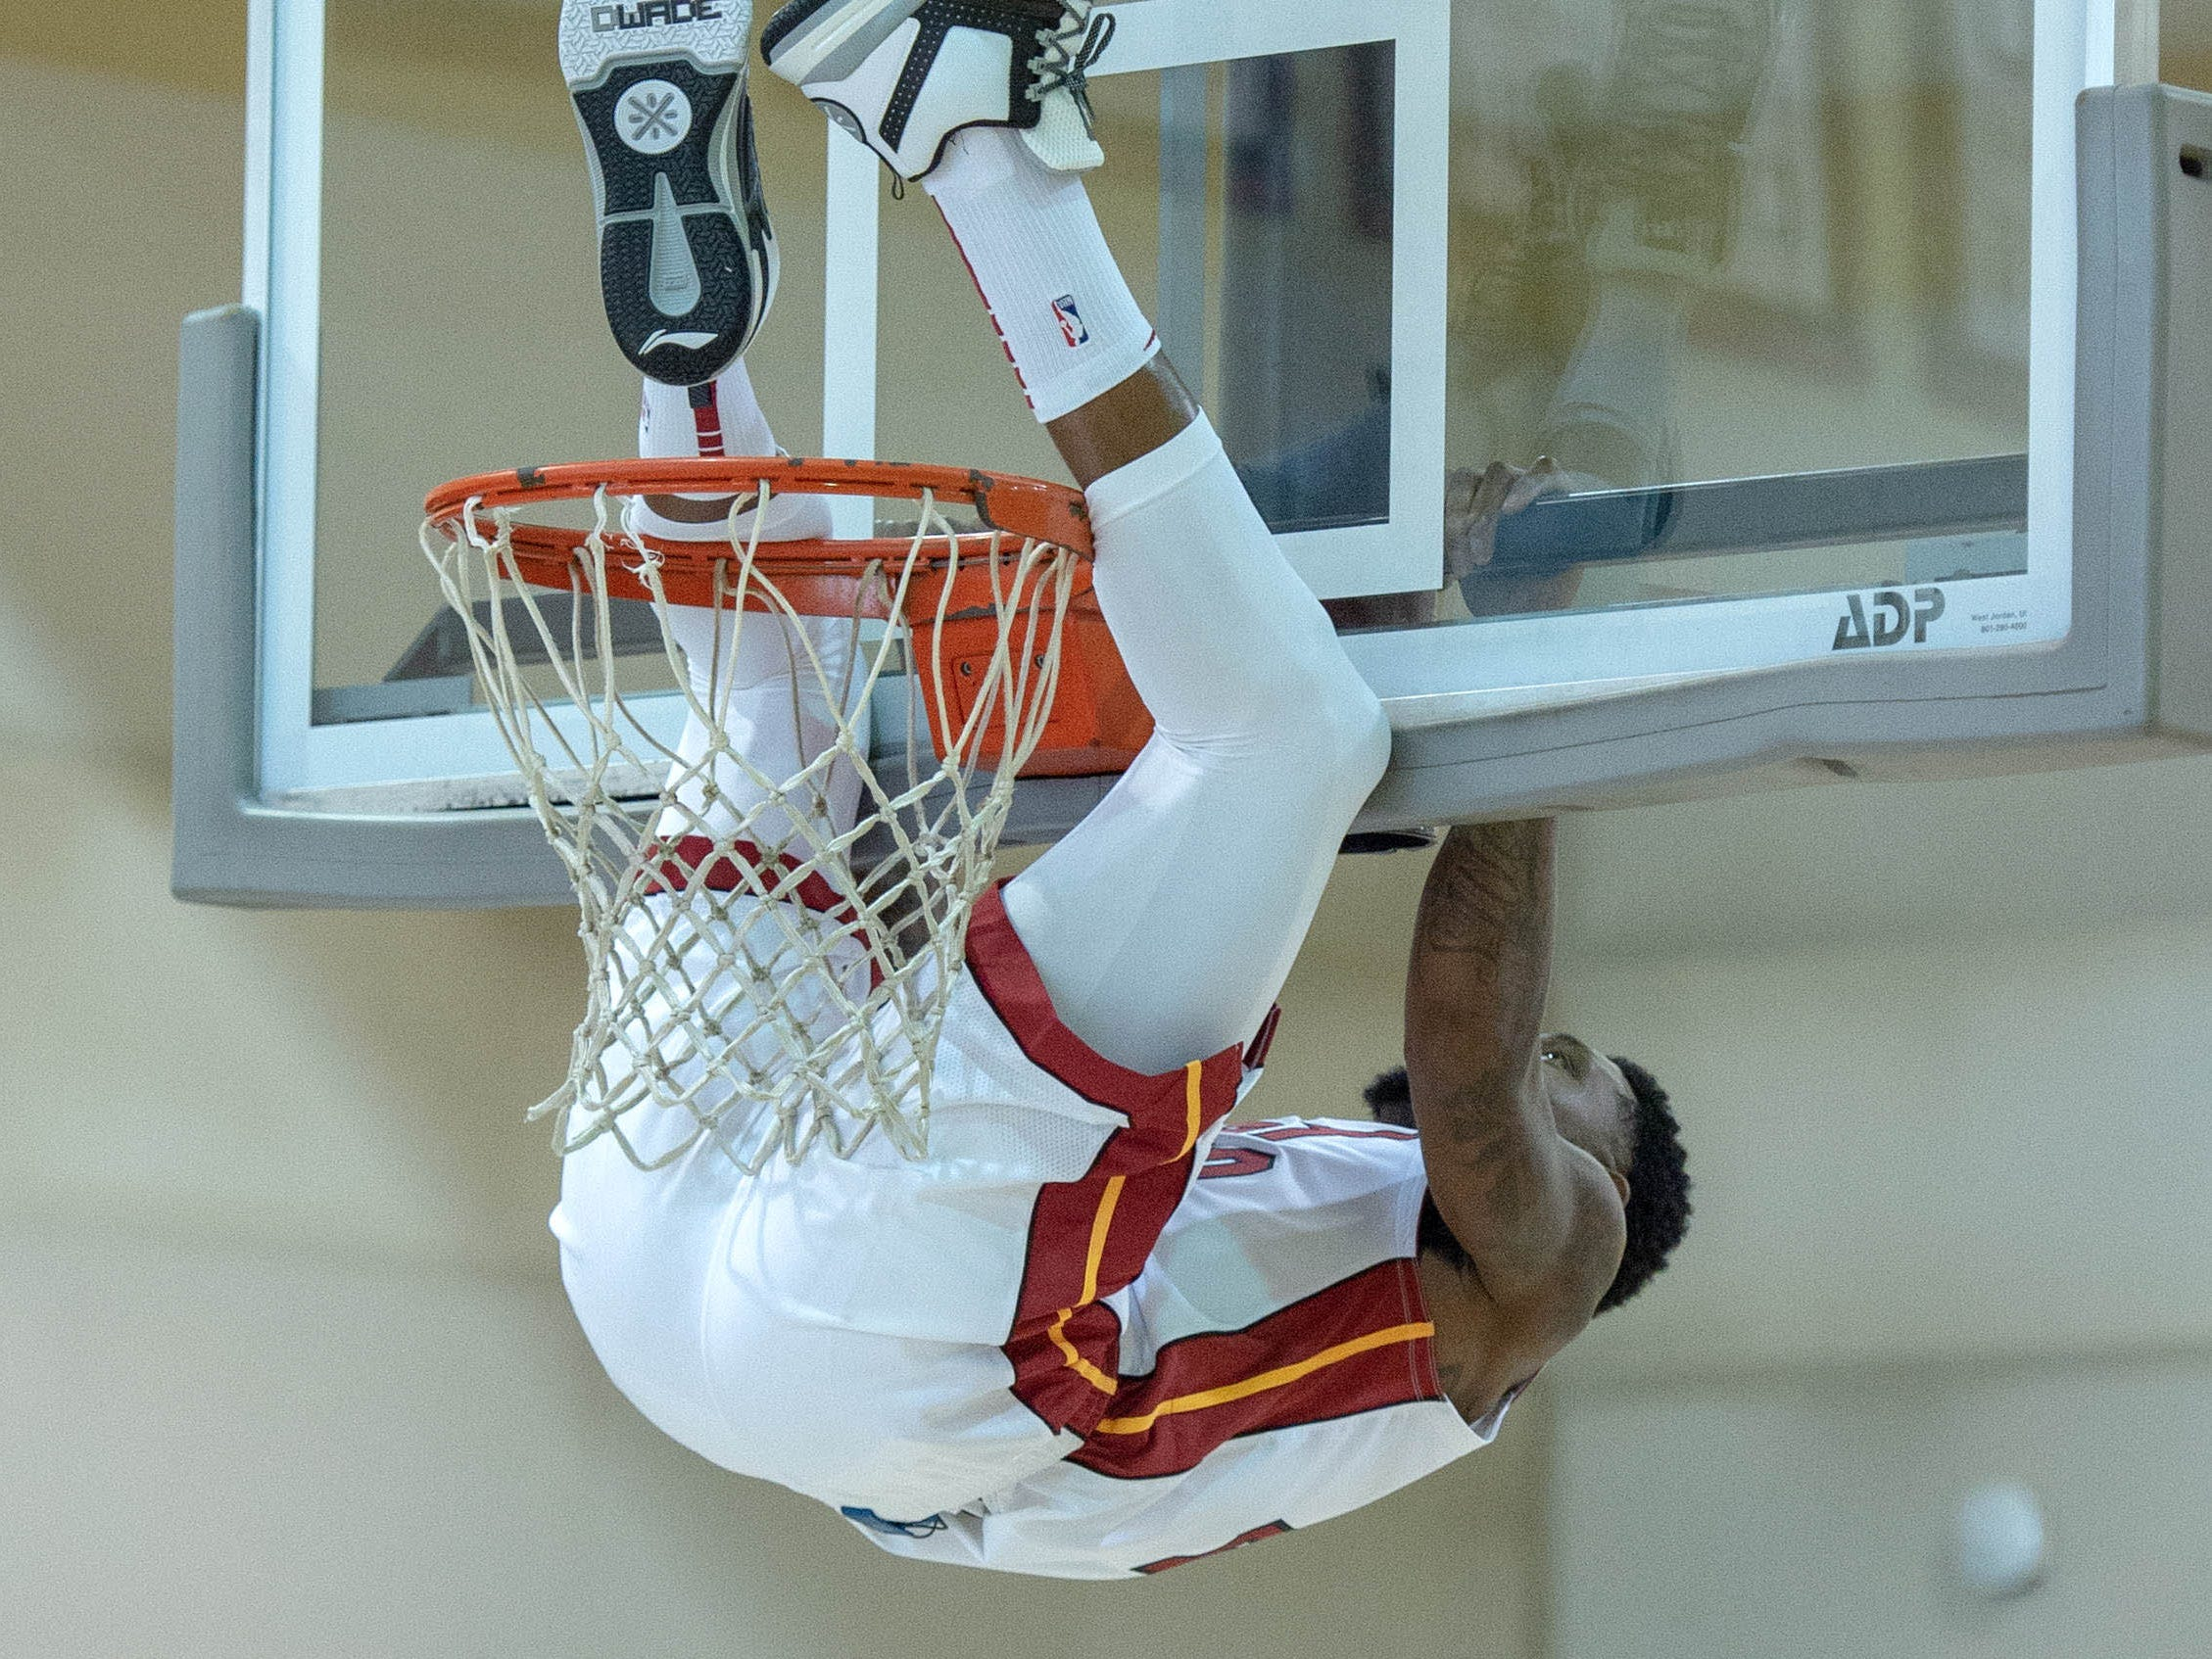 Miami Heat forward Udonis Haslem hangs on the rim during media day.